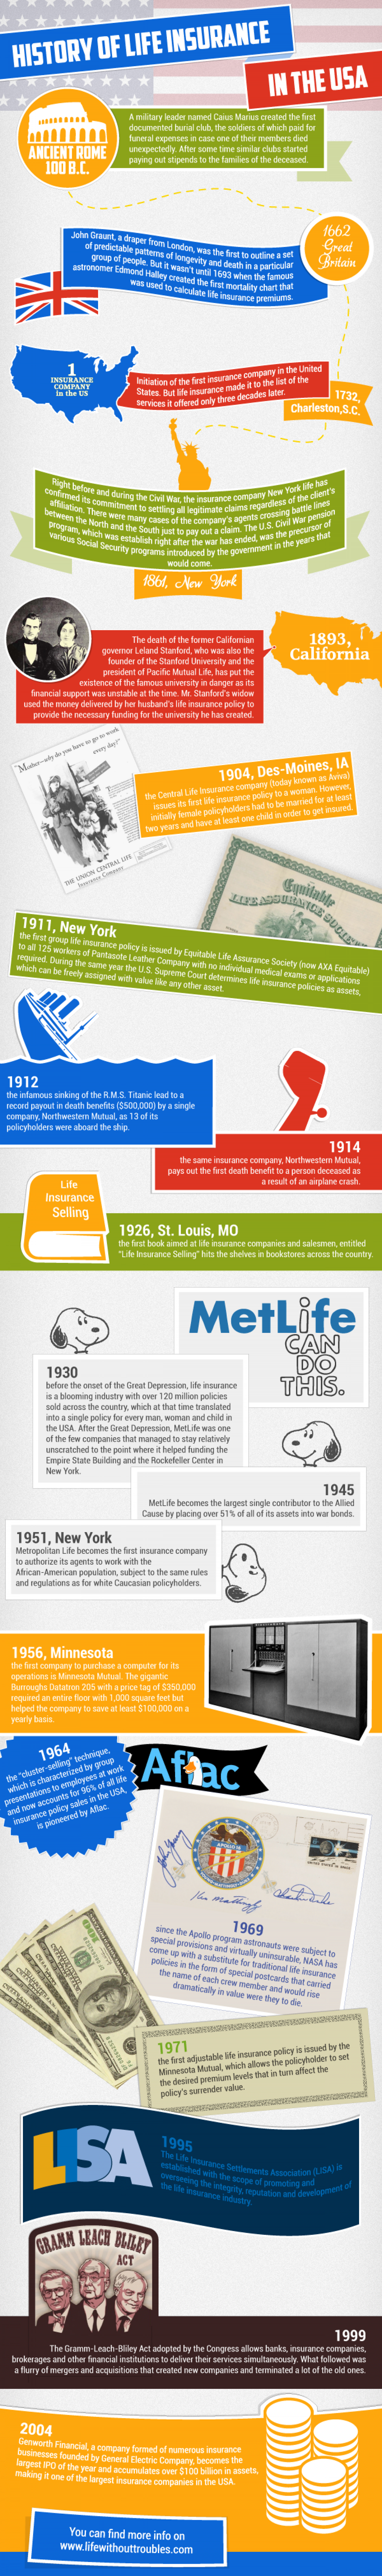 History of Life Insurance Infographic